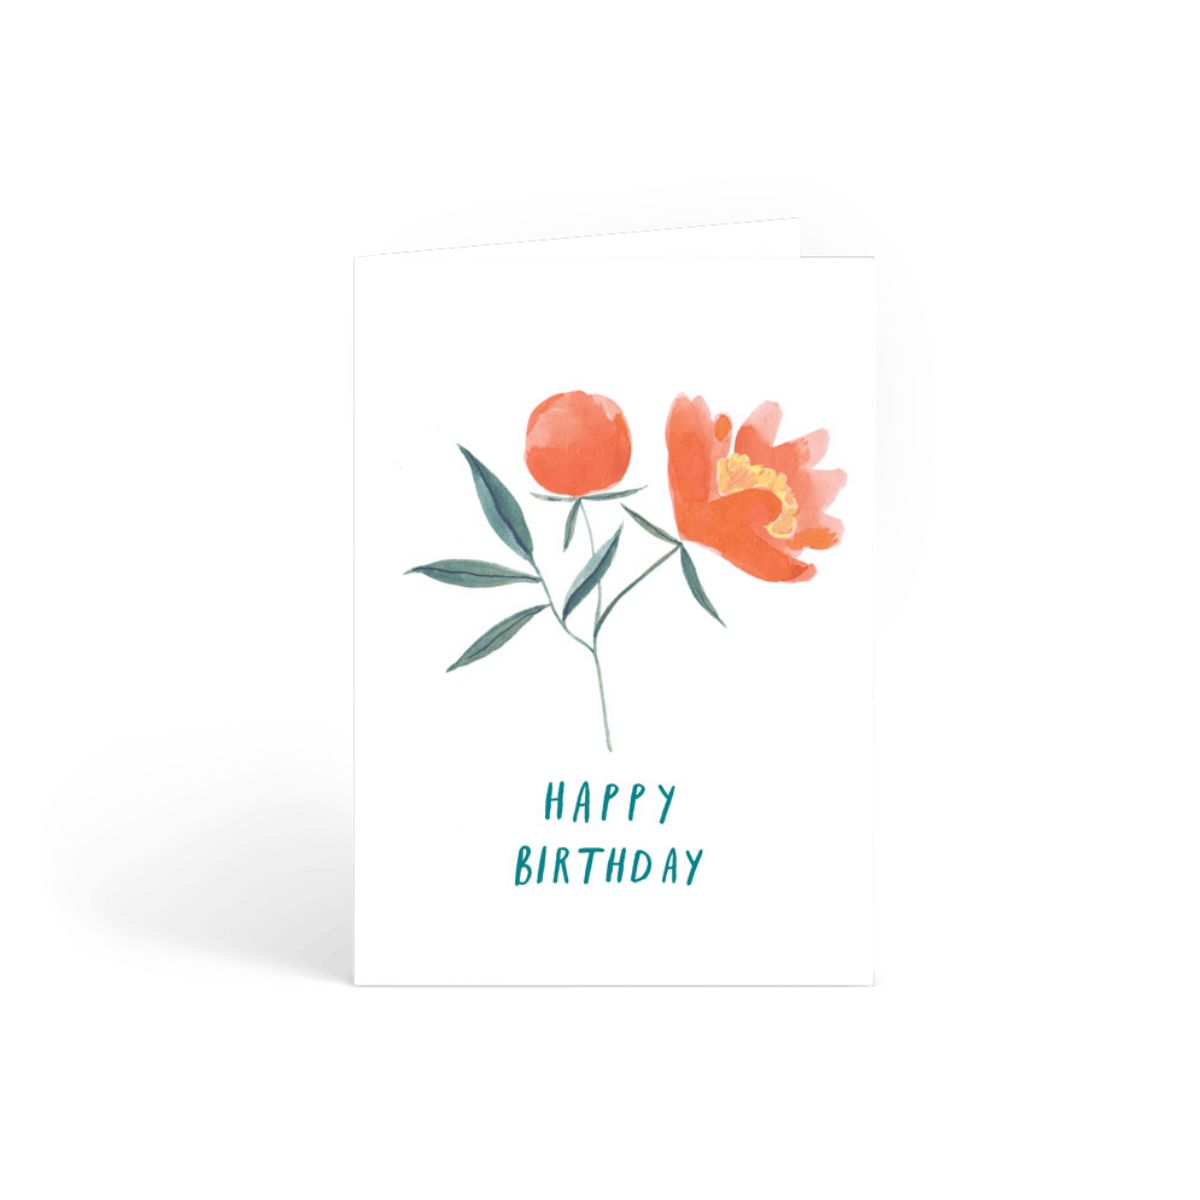 Https%3a%2f%2fwww.papier.com%2fproduct image%2f49714%2f2%2fbirthday peony 12184 front 1542379532.png?ixlib=rb 1.1